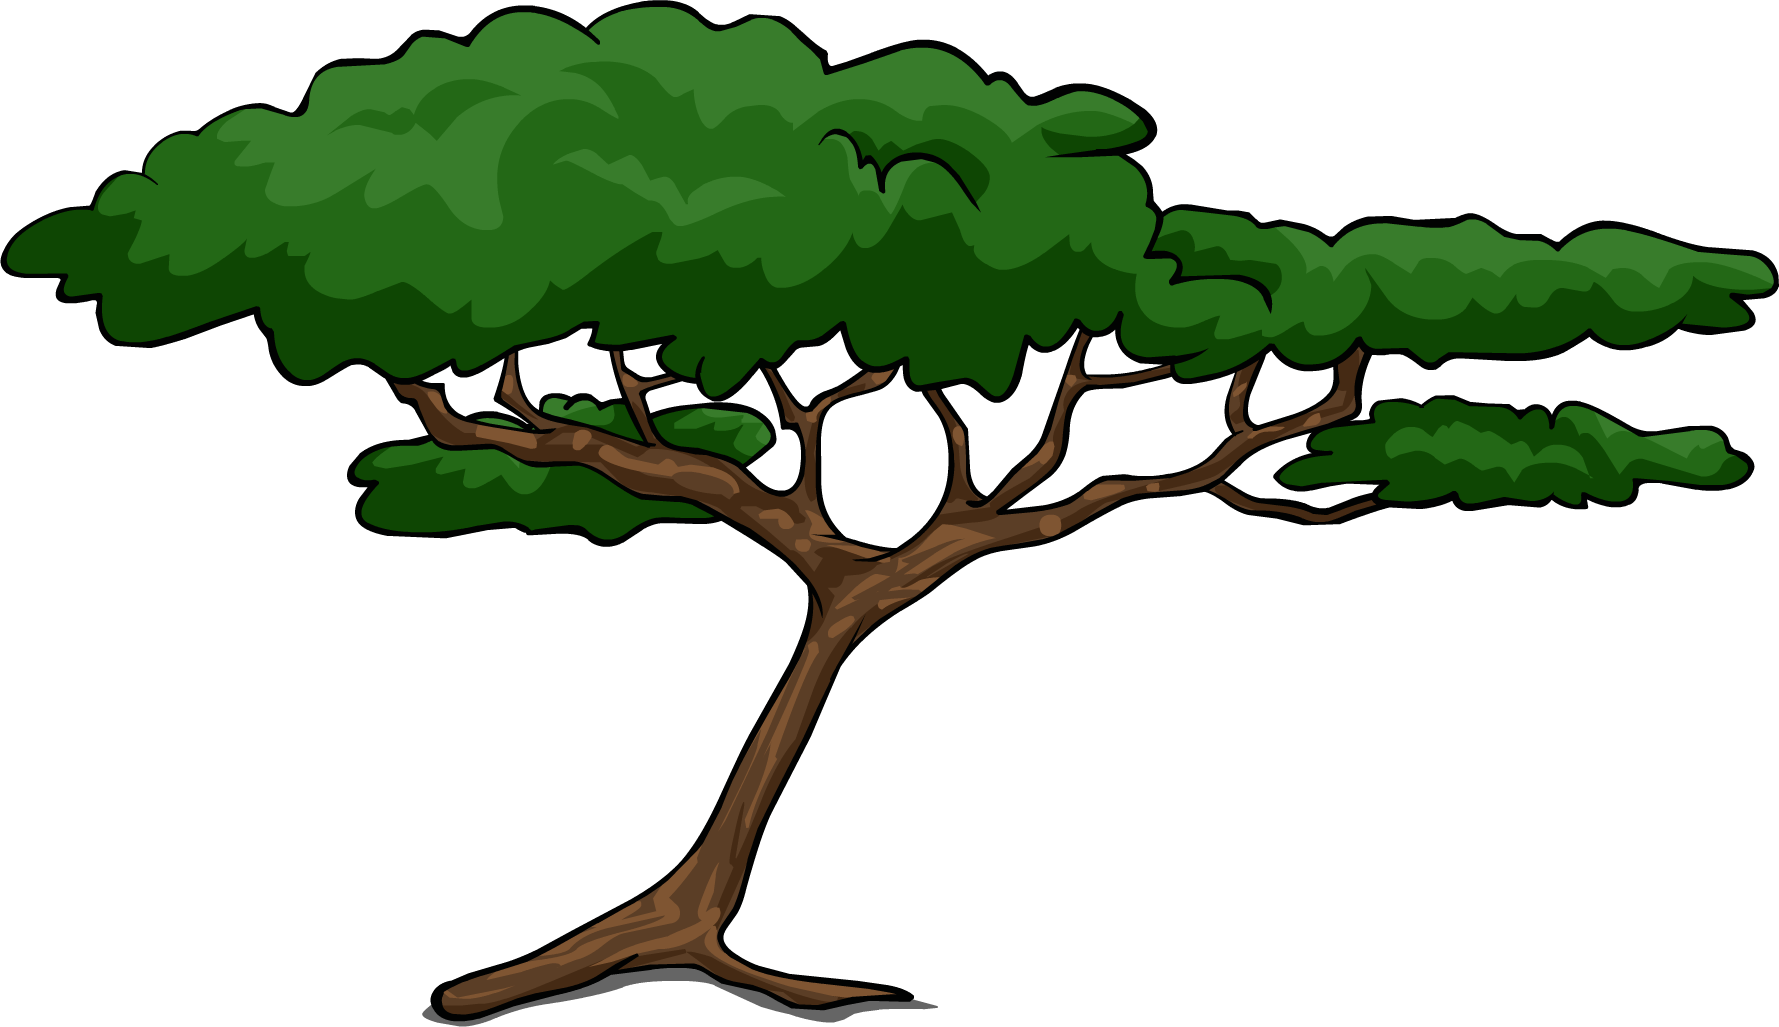 Jungle tree clipart clip transparent library 28+ Collection of Jungle Tree Clipart | High quality, free cliparts ... clip transparent library